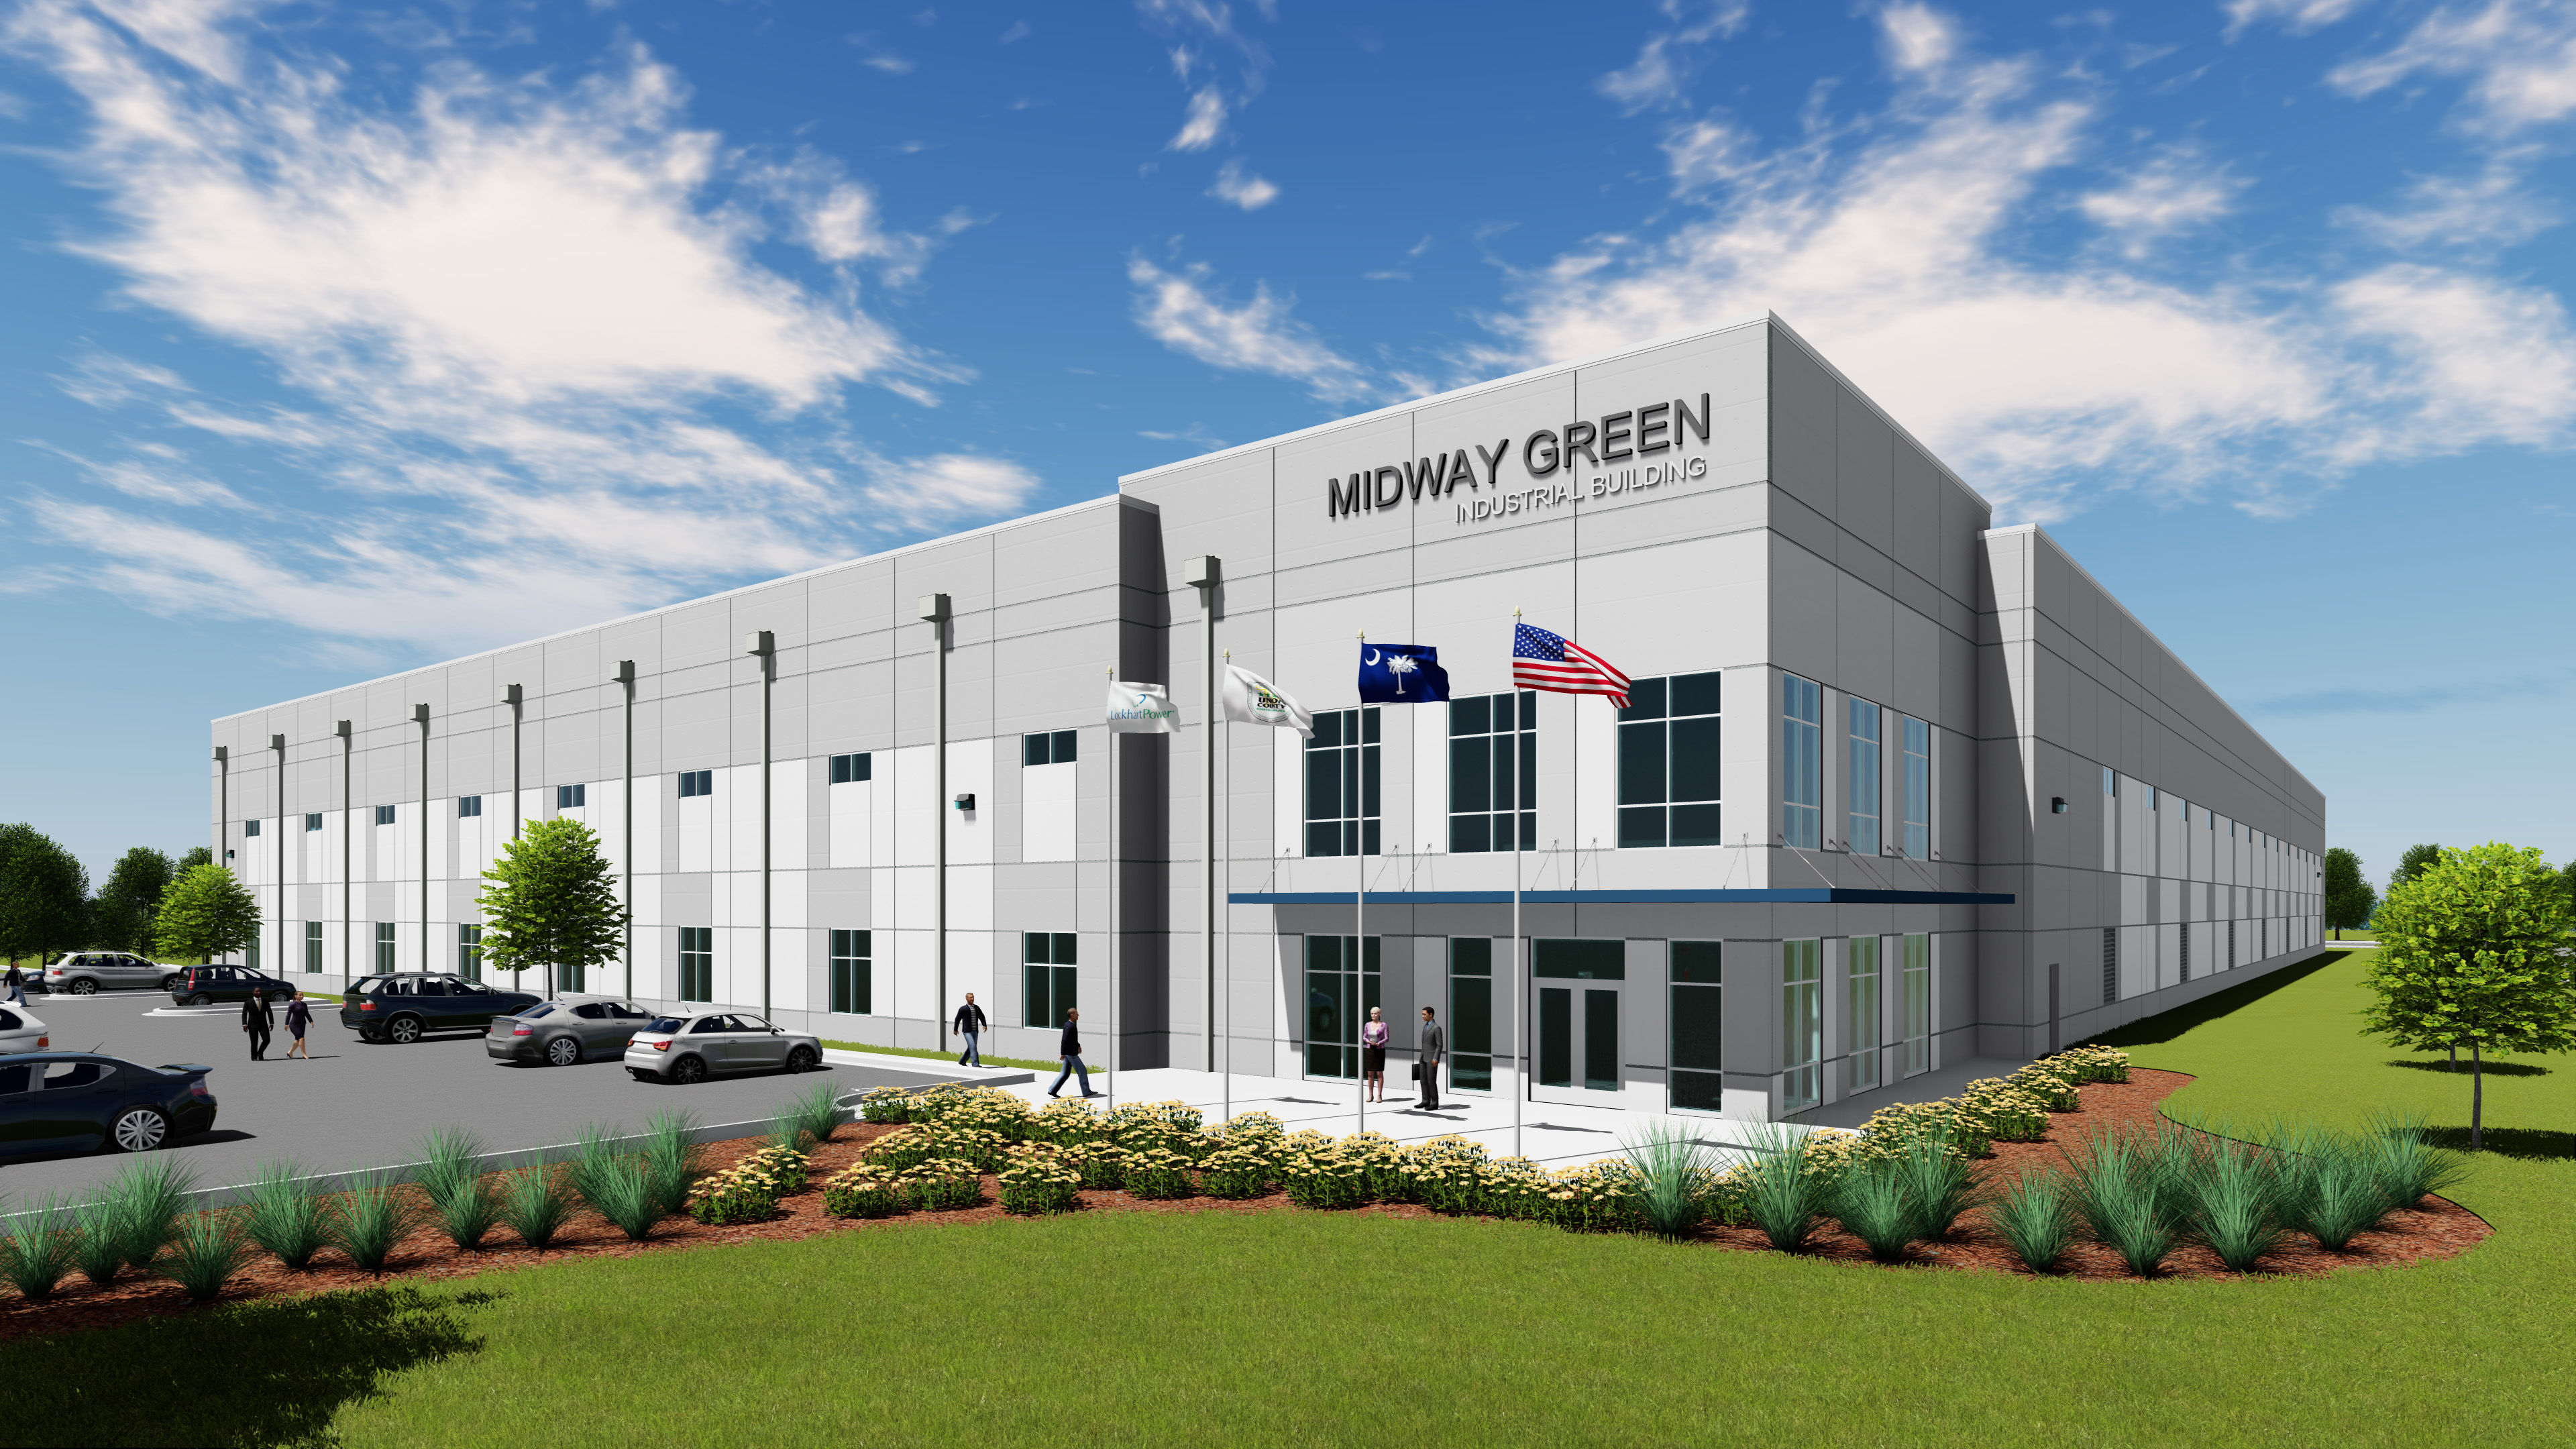 Midway green industrial spec building union county for Building spec homes